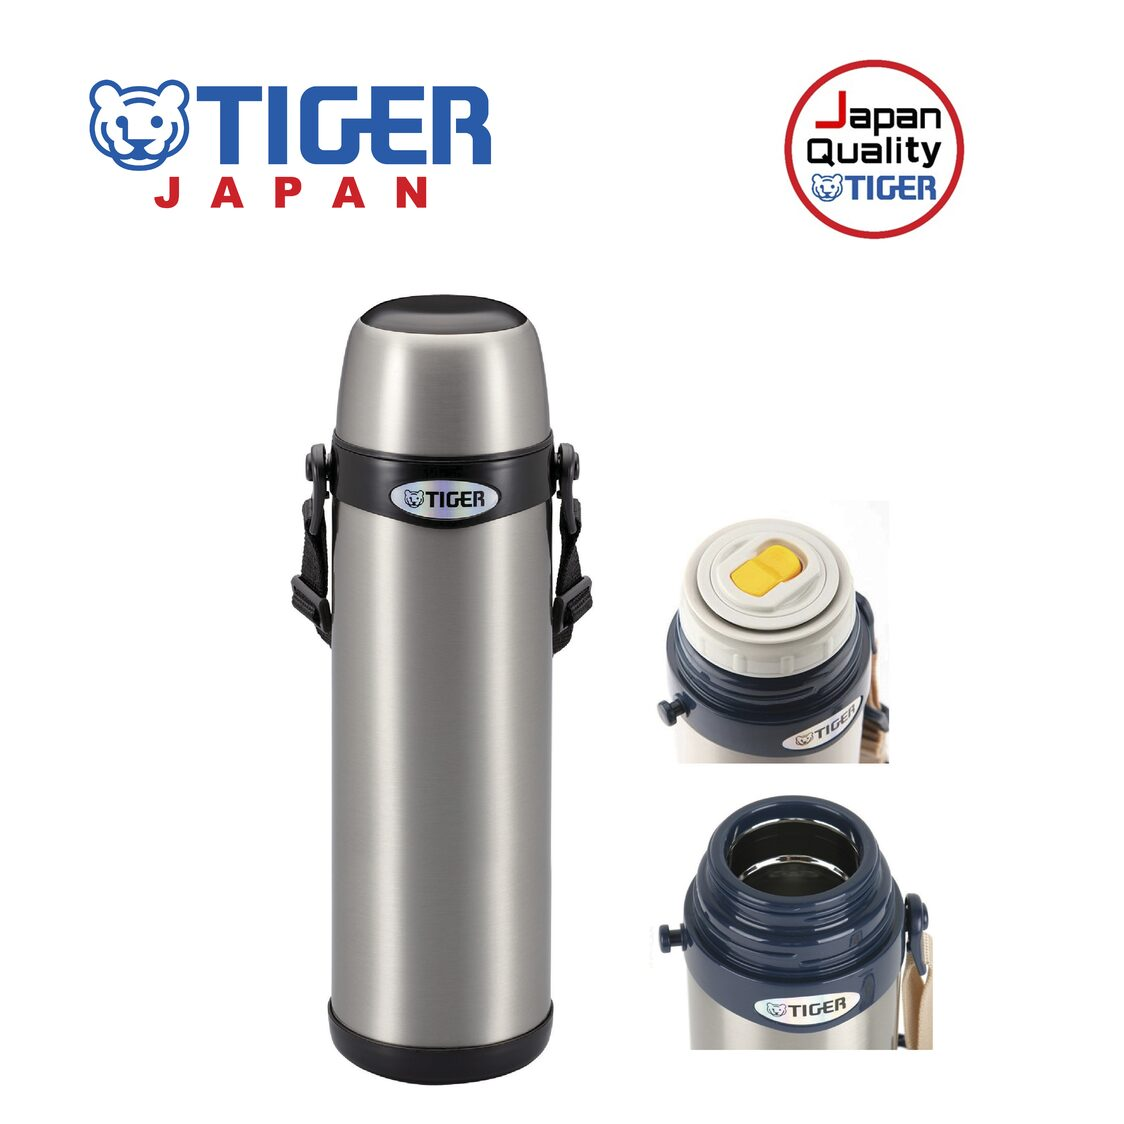 Tiger 1L Double Stainless Steel Vacuumised Bottle MBI-A100